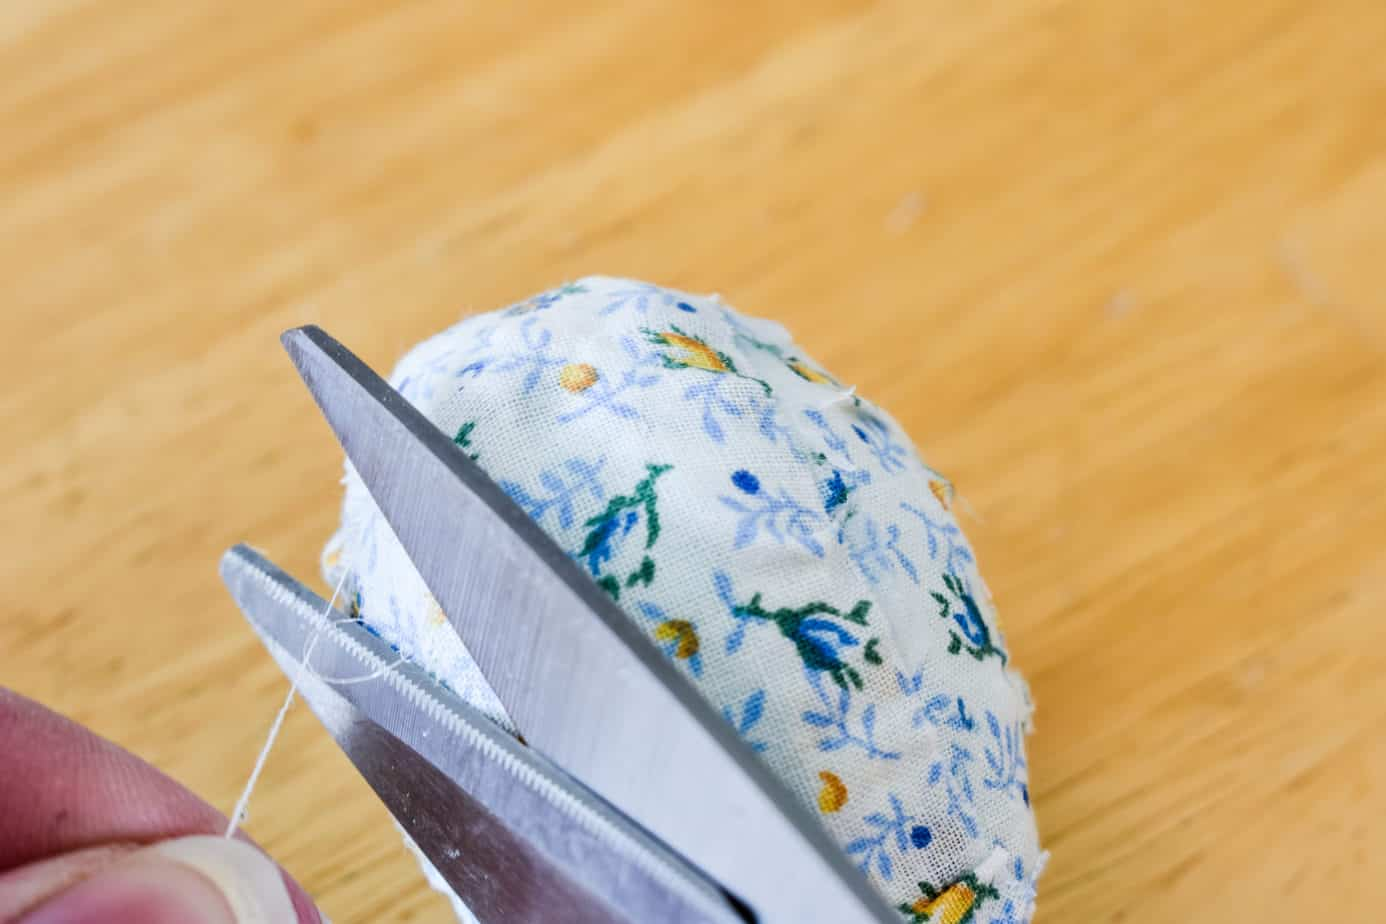 trimming loose string from a fabric covered Easter egg